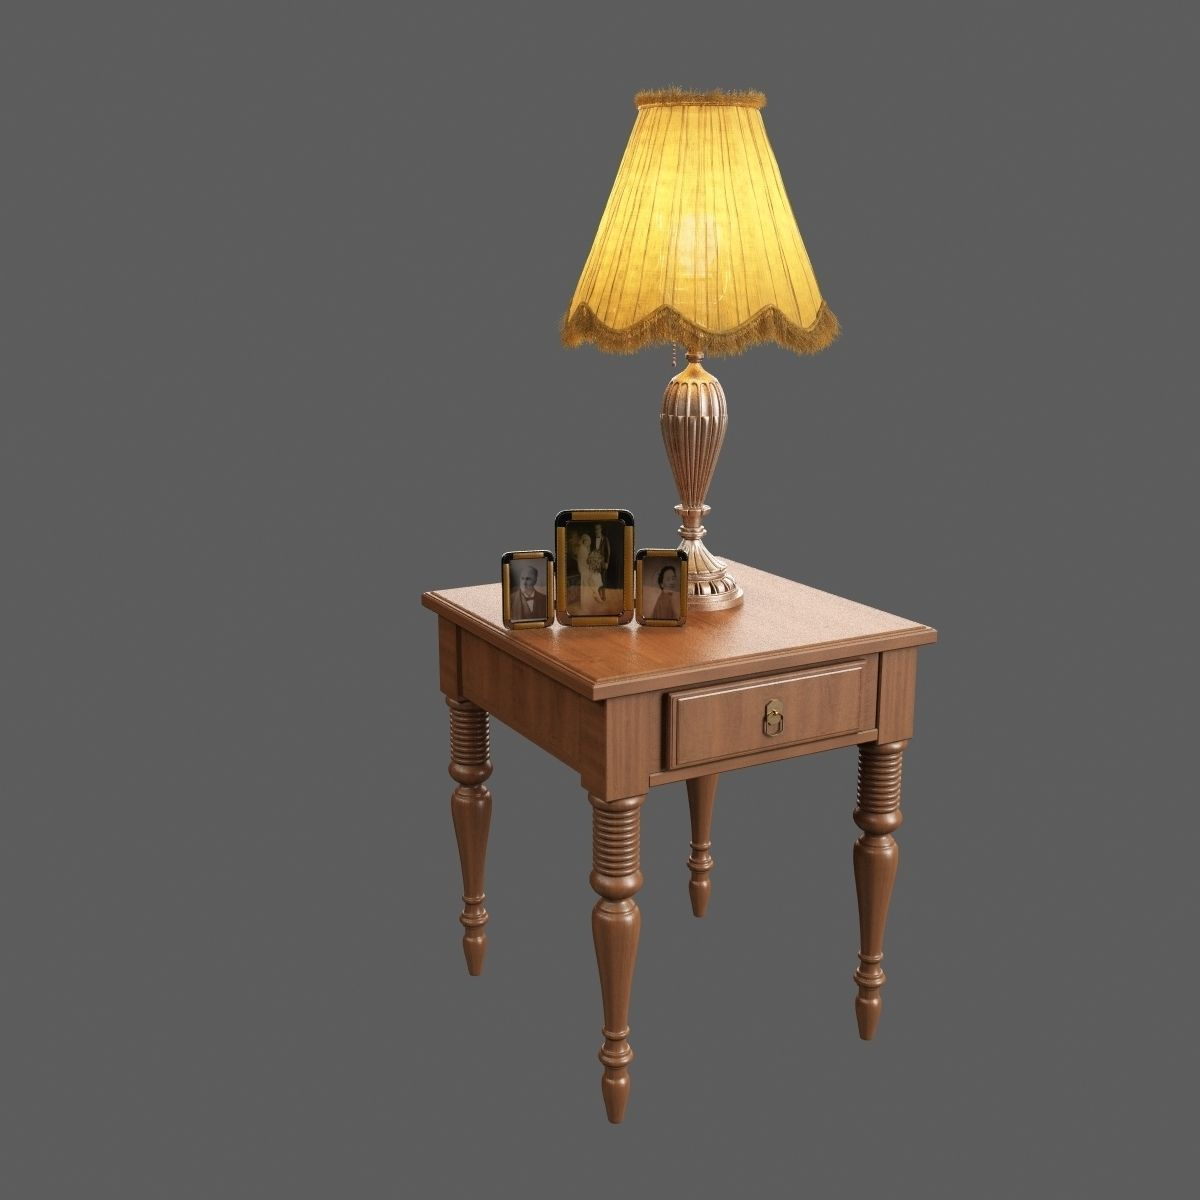 Old Lamp 3d Model Old Lamps Architecture Model Lamp